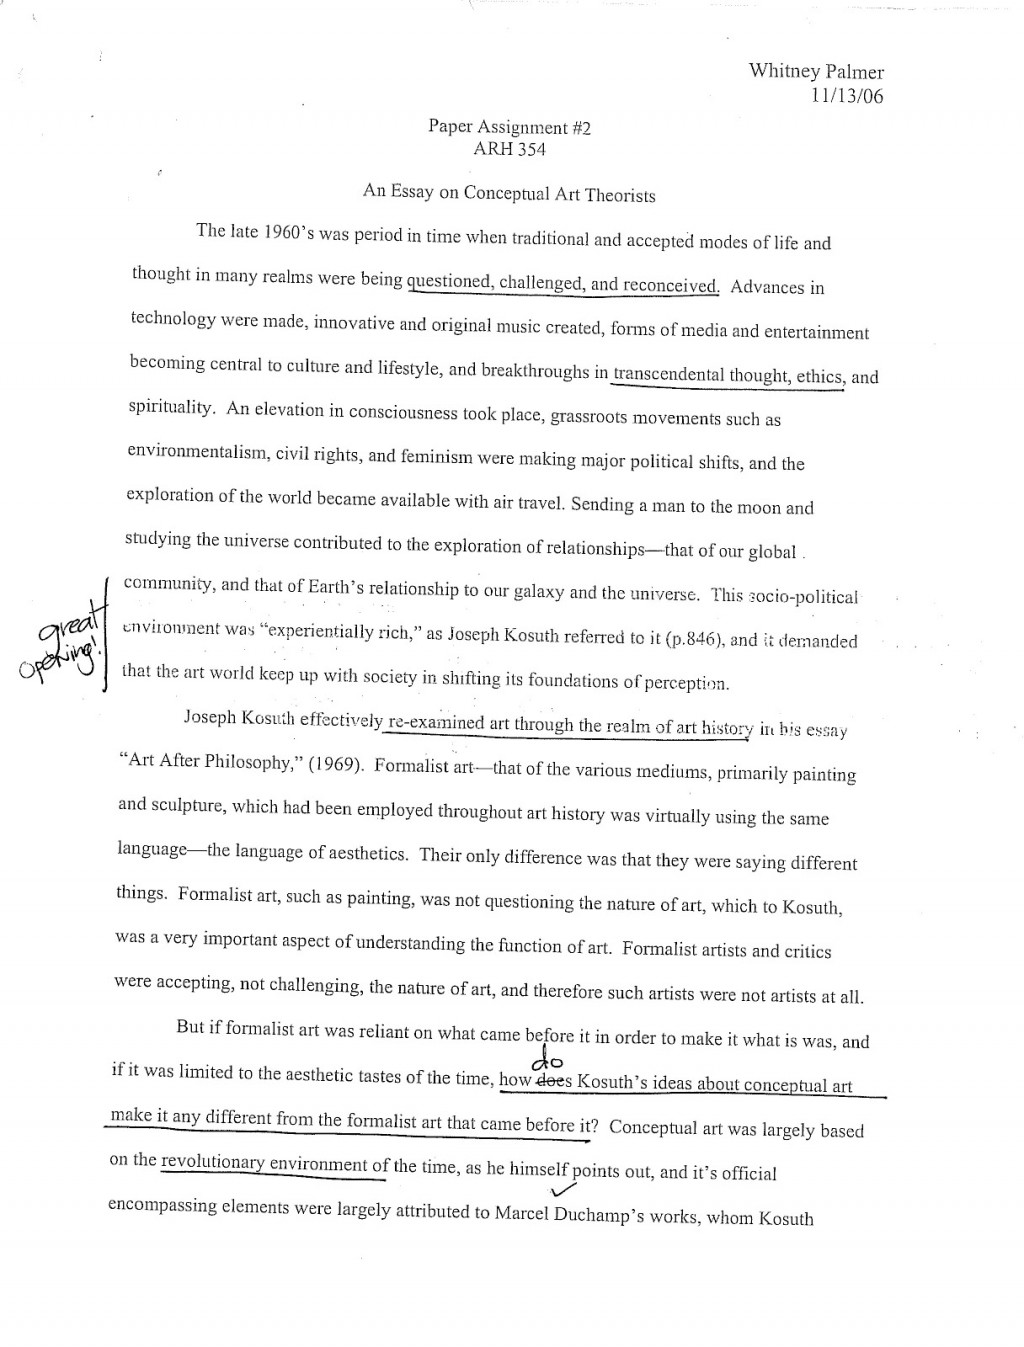 007 Art Essay Page Phenomenal History Introduction Pop Conclusion Outline Large